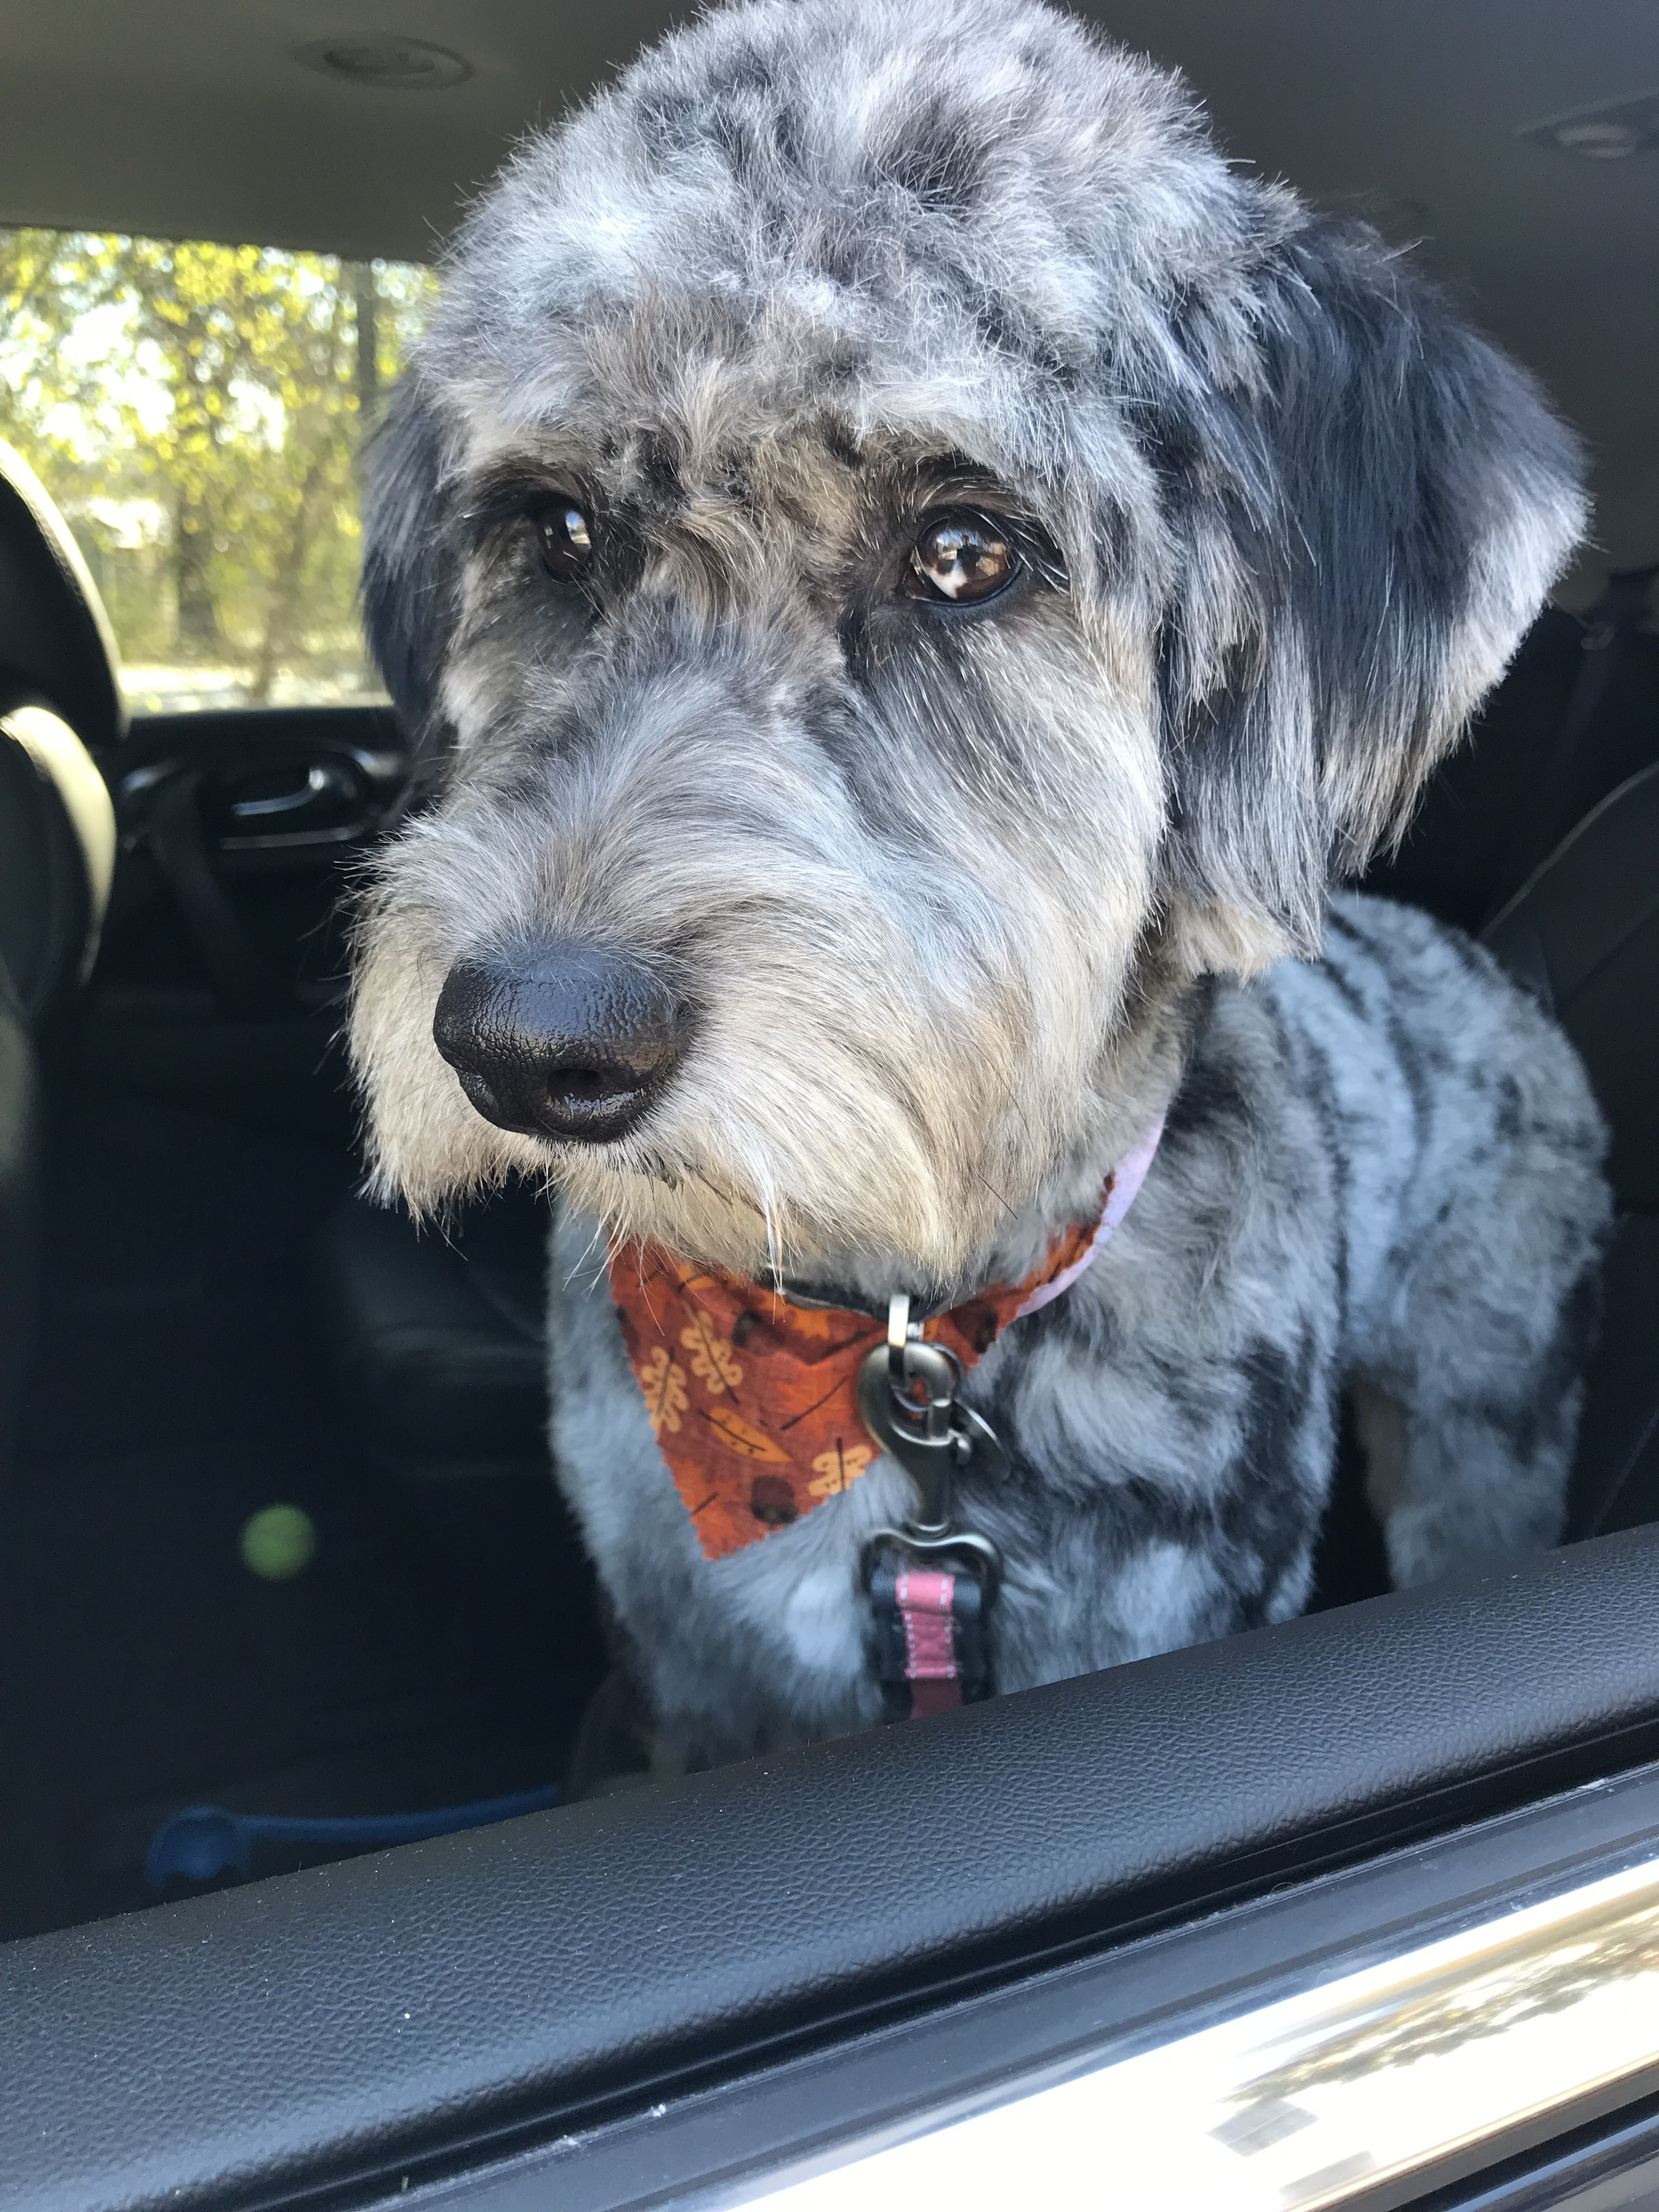 Pin by CJ Sachs on Aussiedoodle Aussiedoodle, Dogs, Animals